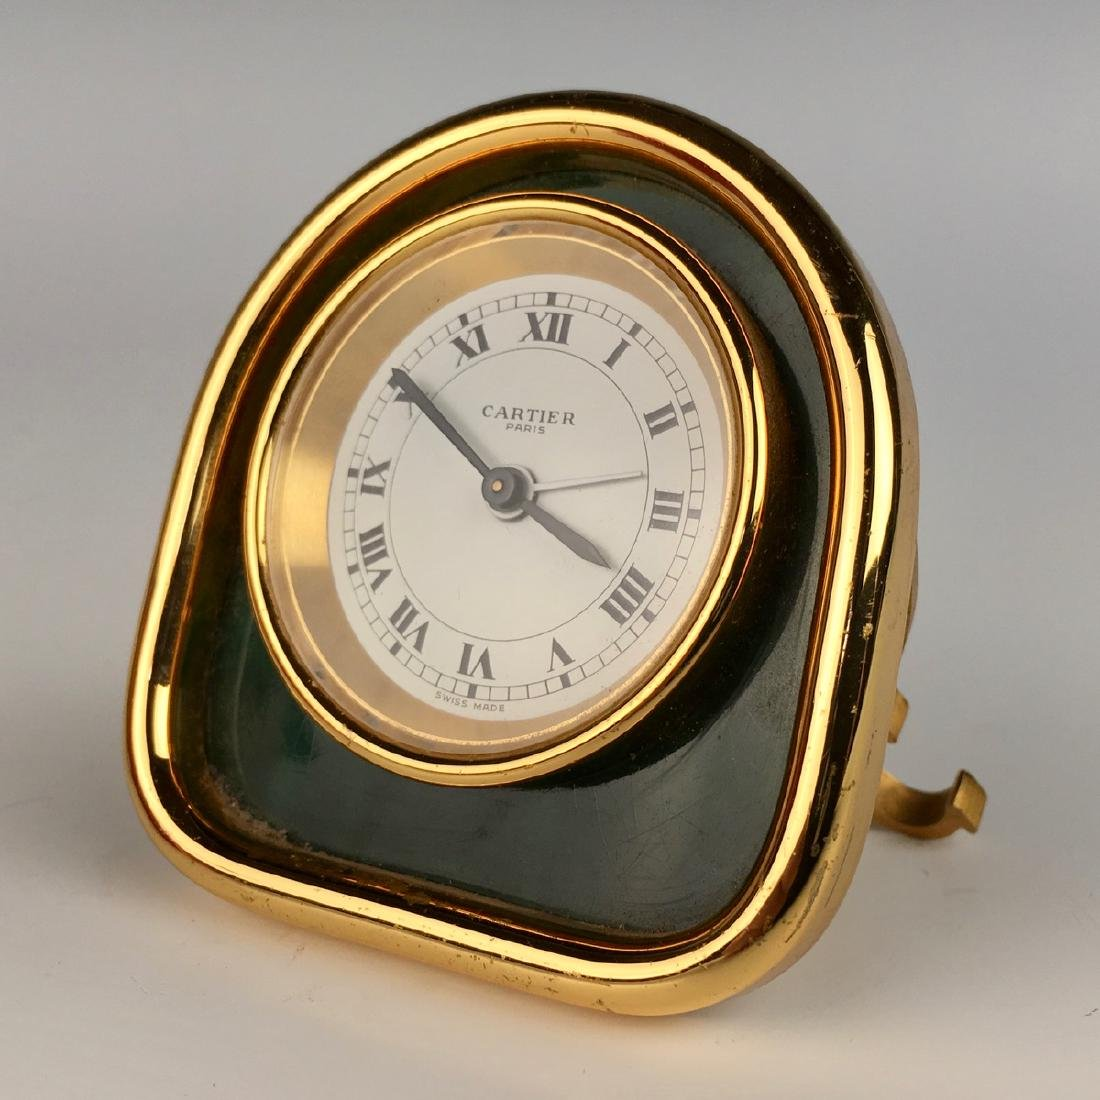 Desk Clock by Cartier, Gold Plated Case - 3